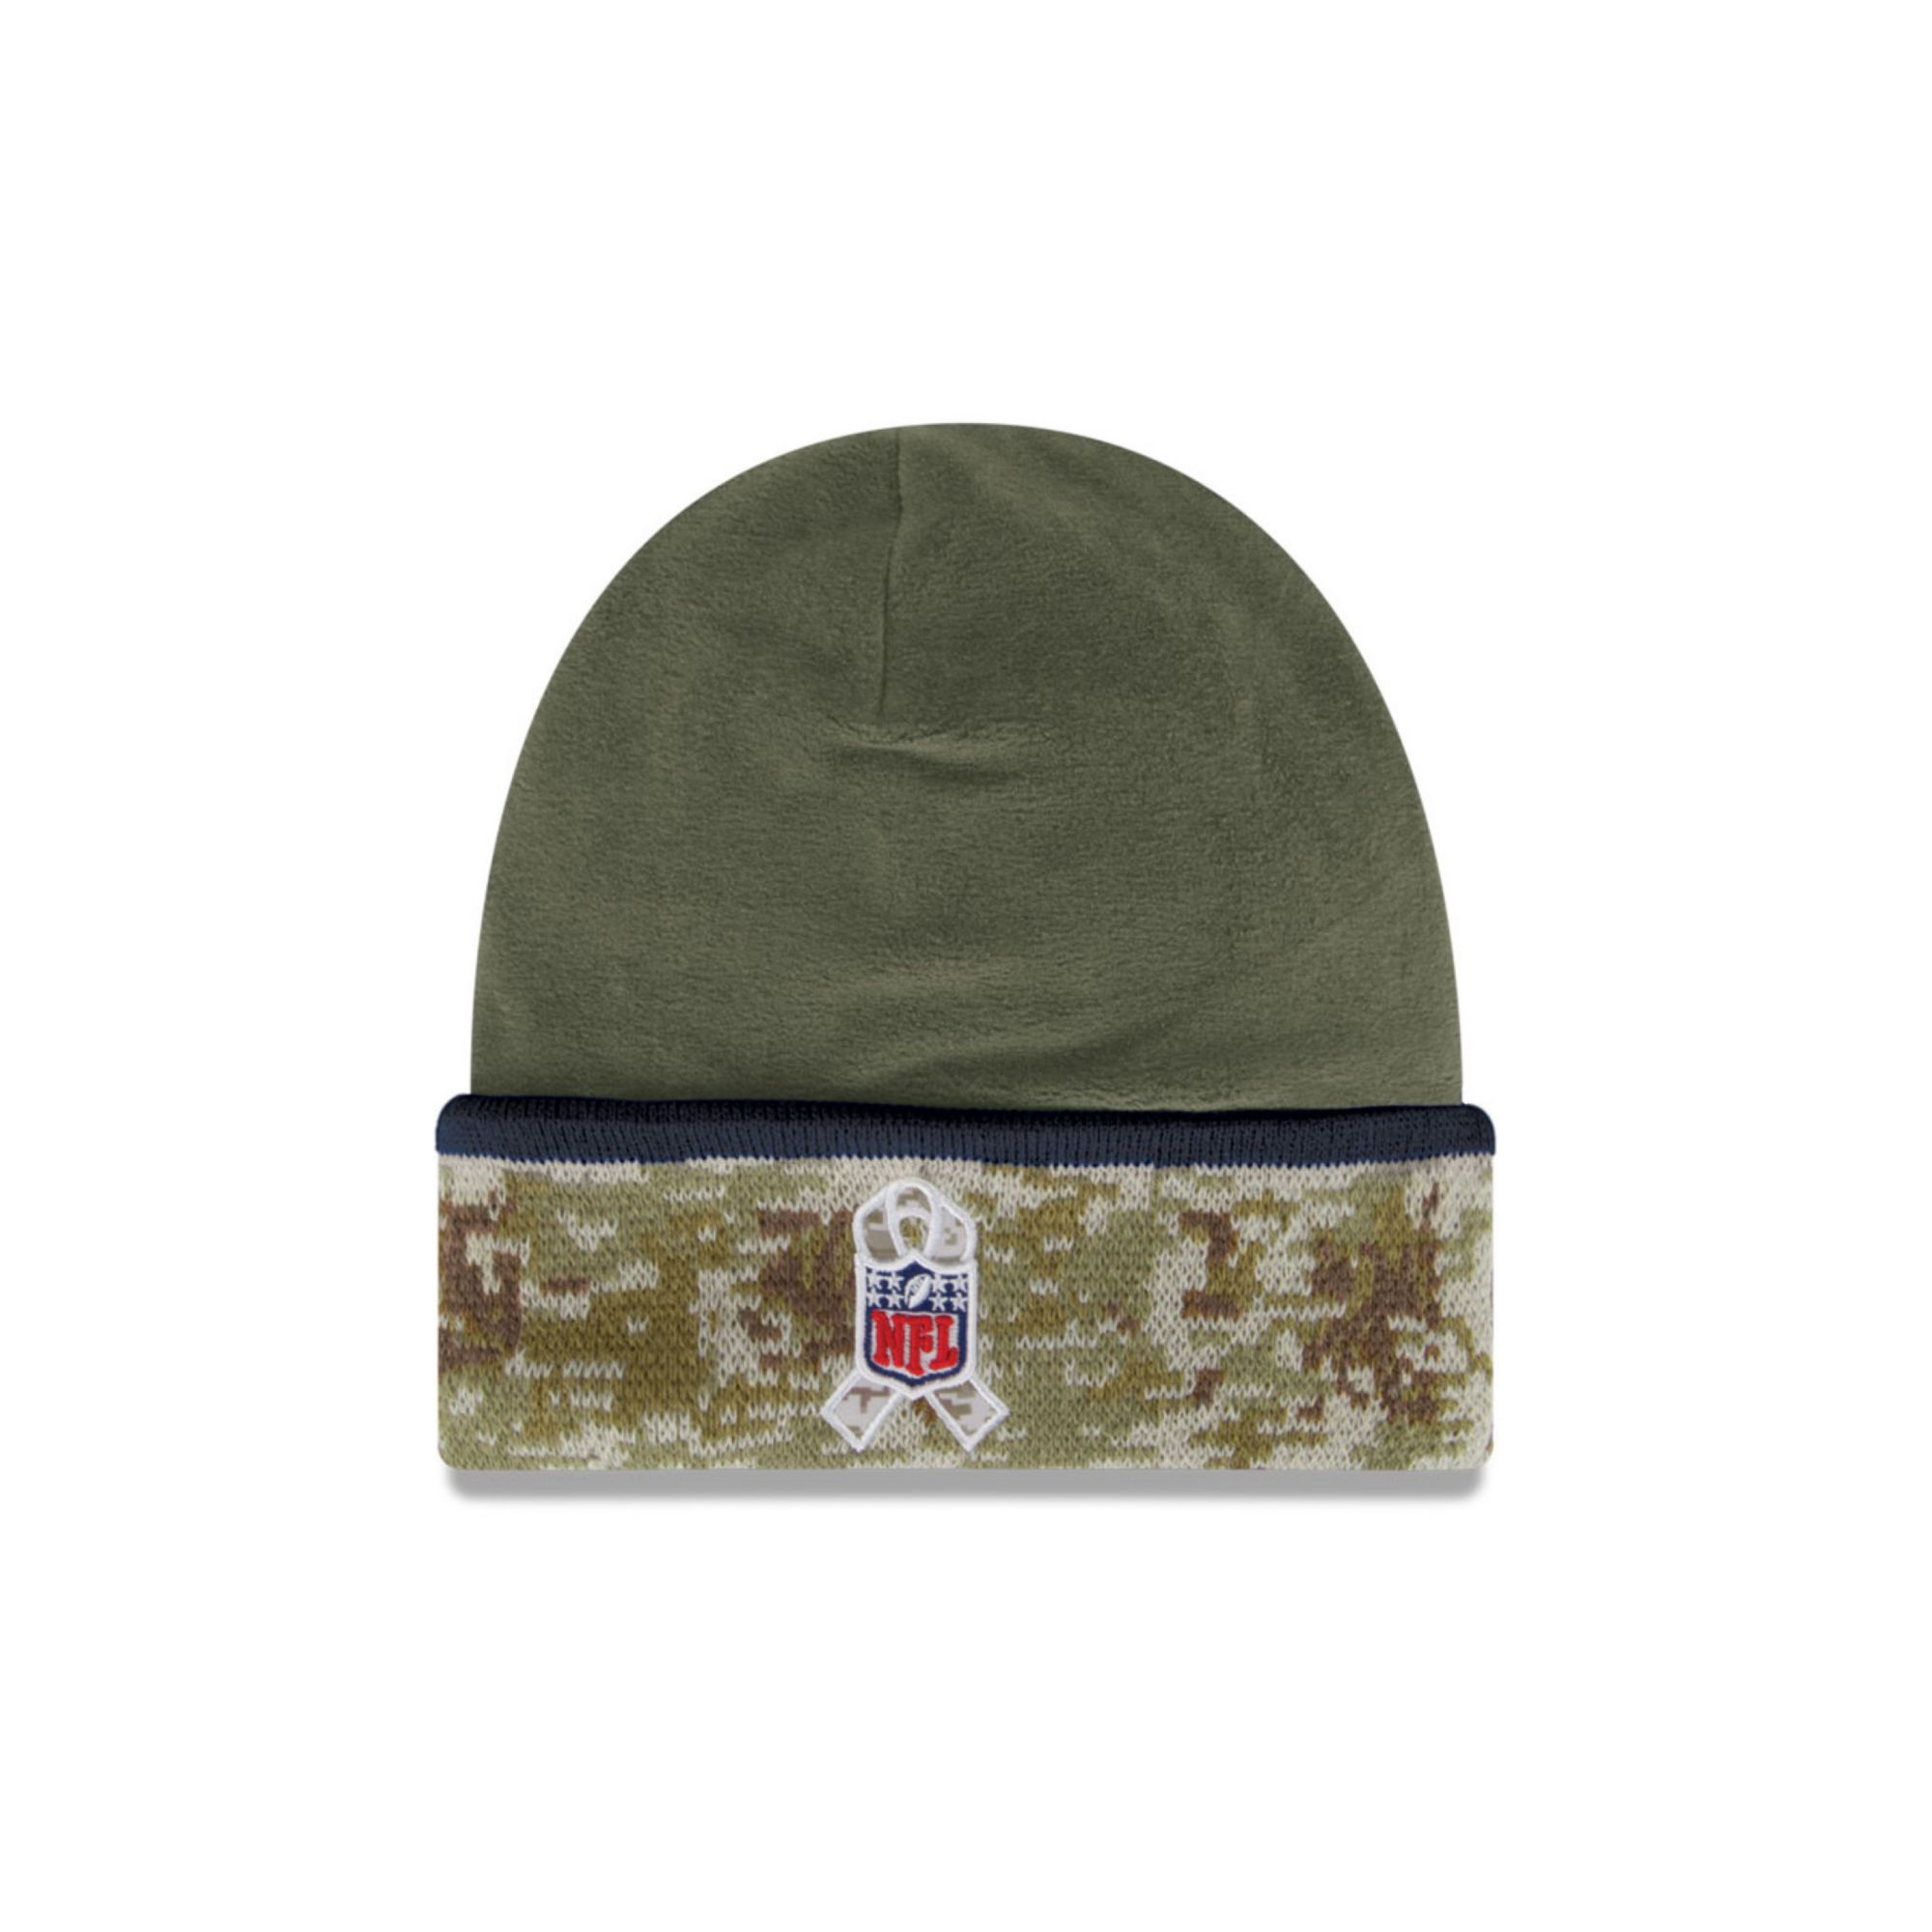 ... discount lyst ktz dallas cowboys salute to service knit hat in green  for men 7fa9d a363d 515a45161